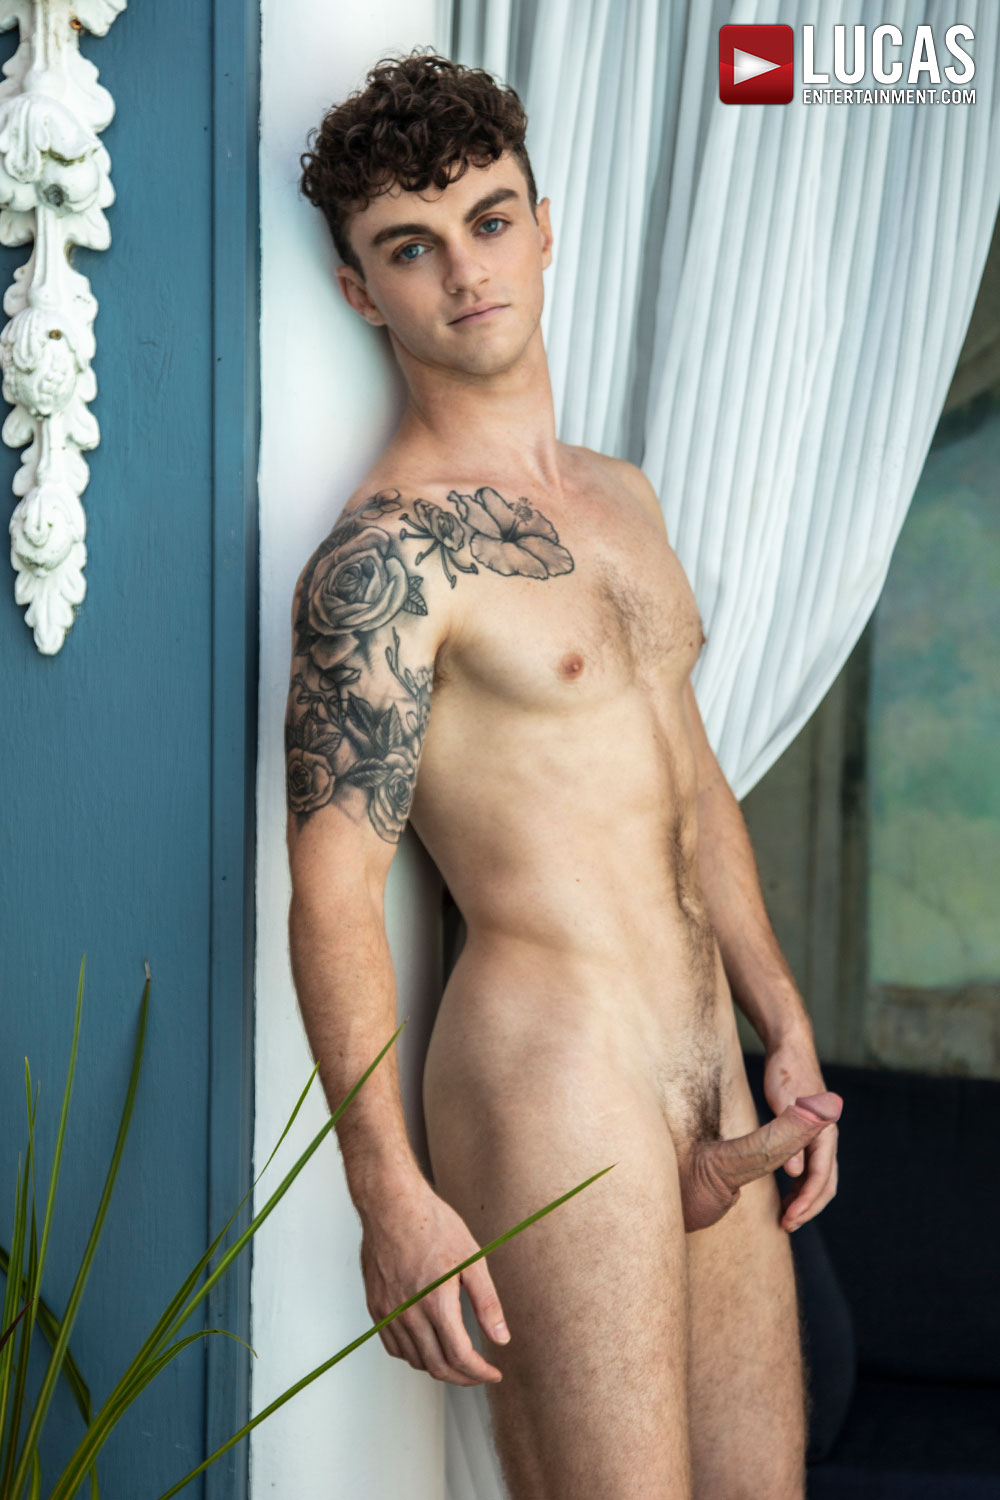 Robert Law - Gay Model - Lucas Raunch